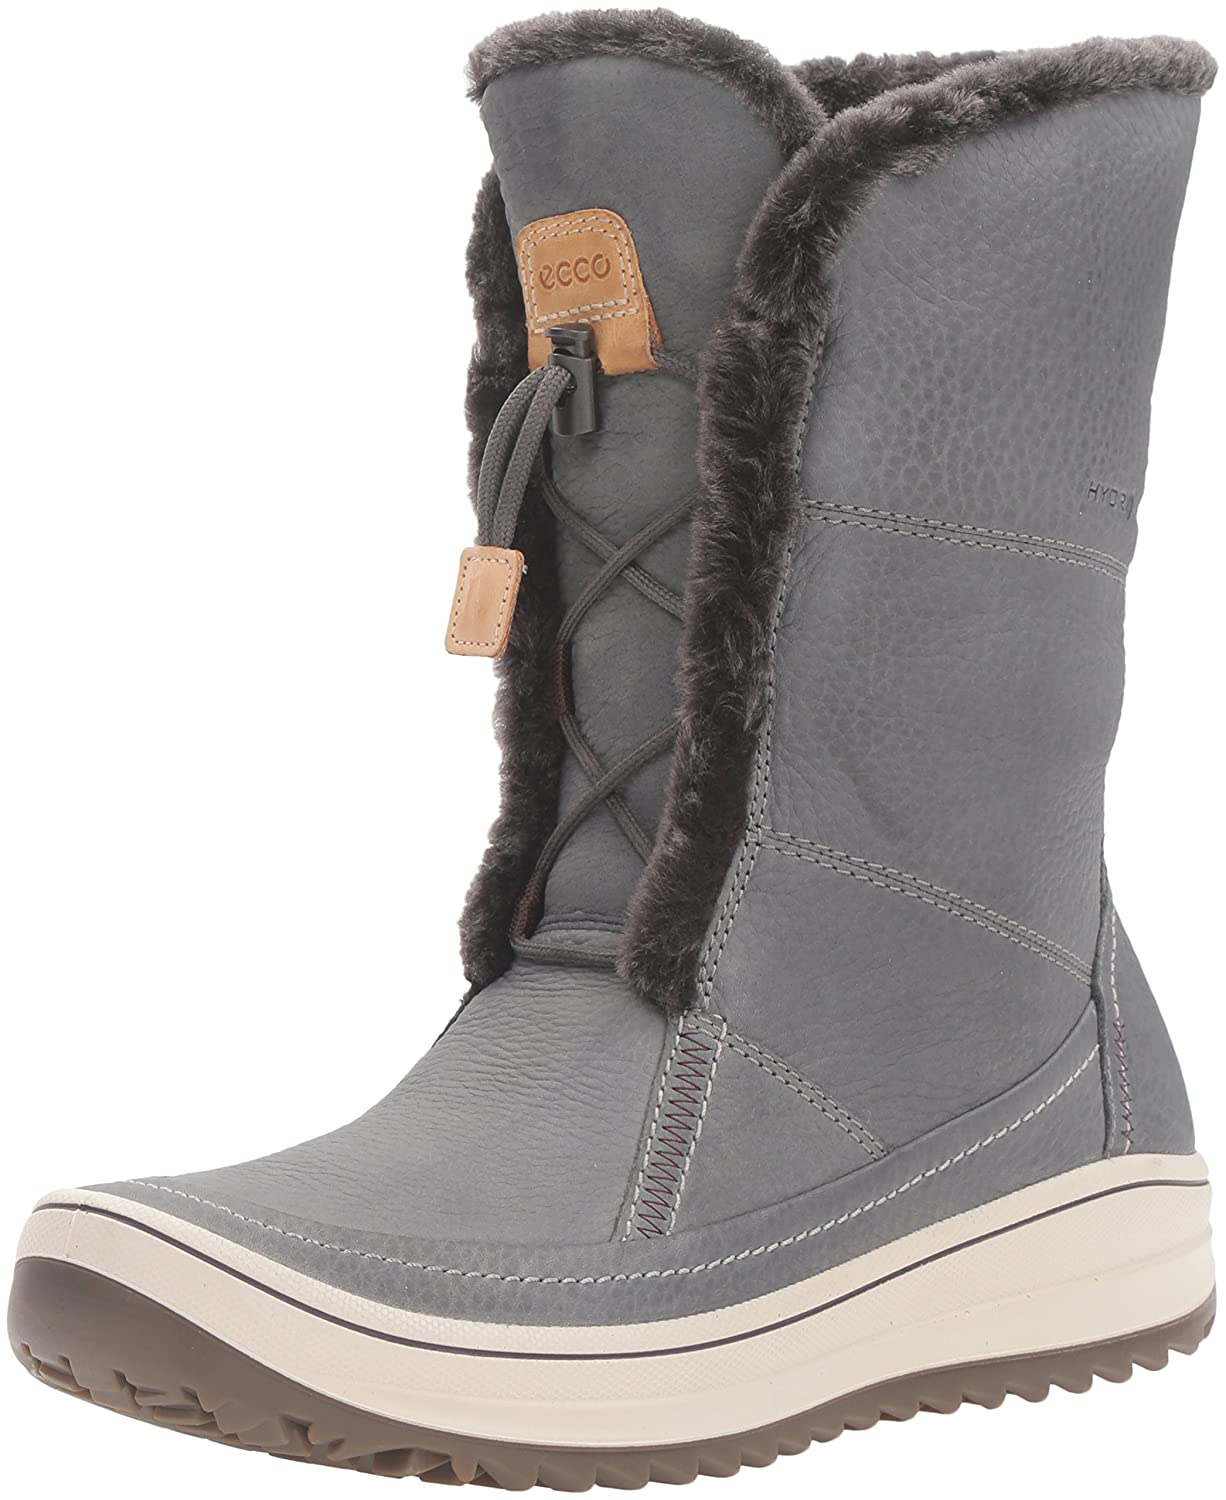 3fc139b88084 ecco snow boots for sale   OFF33% Discounts